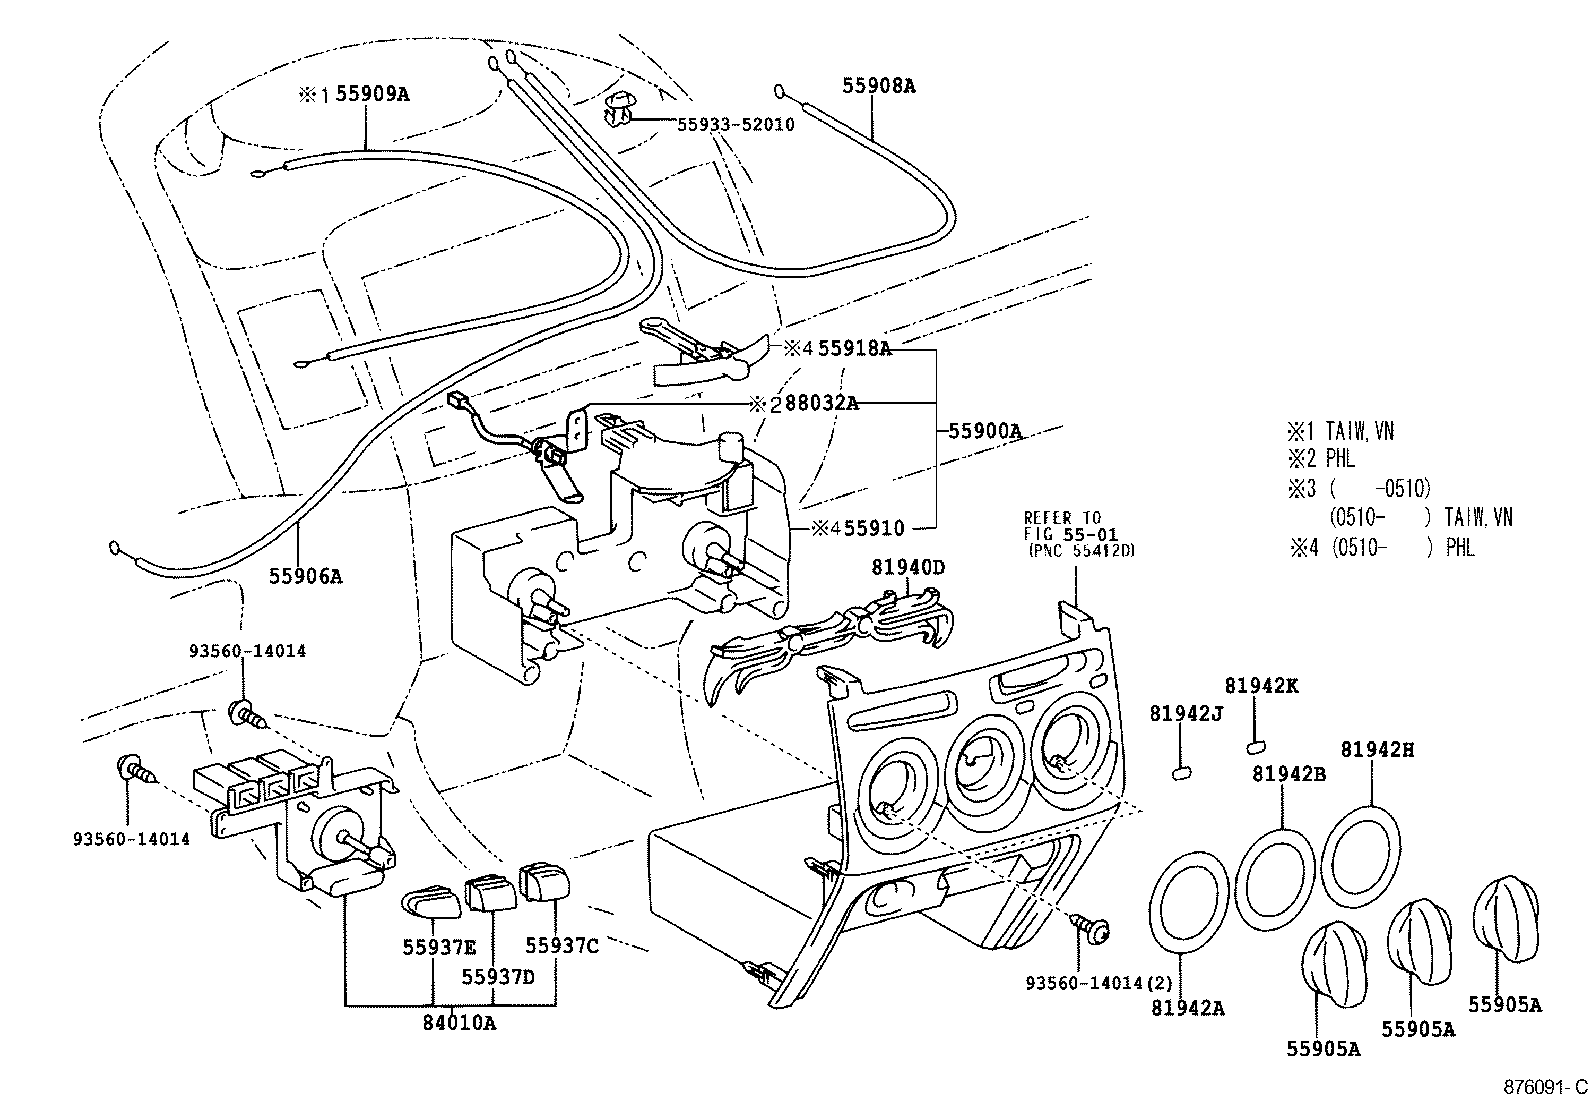 toyota hilux stereo wiring diagram 2008 data flow context vios pdf